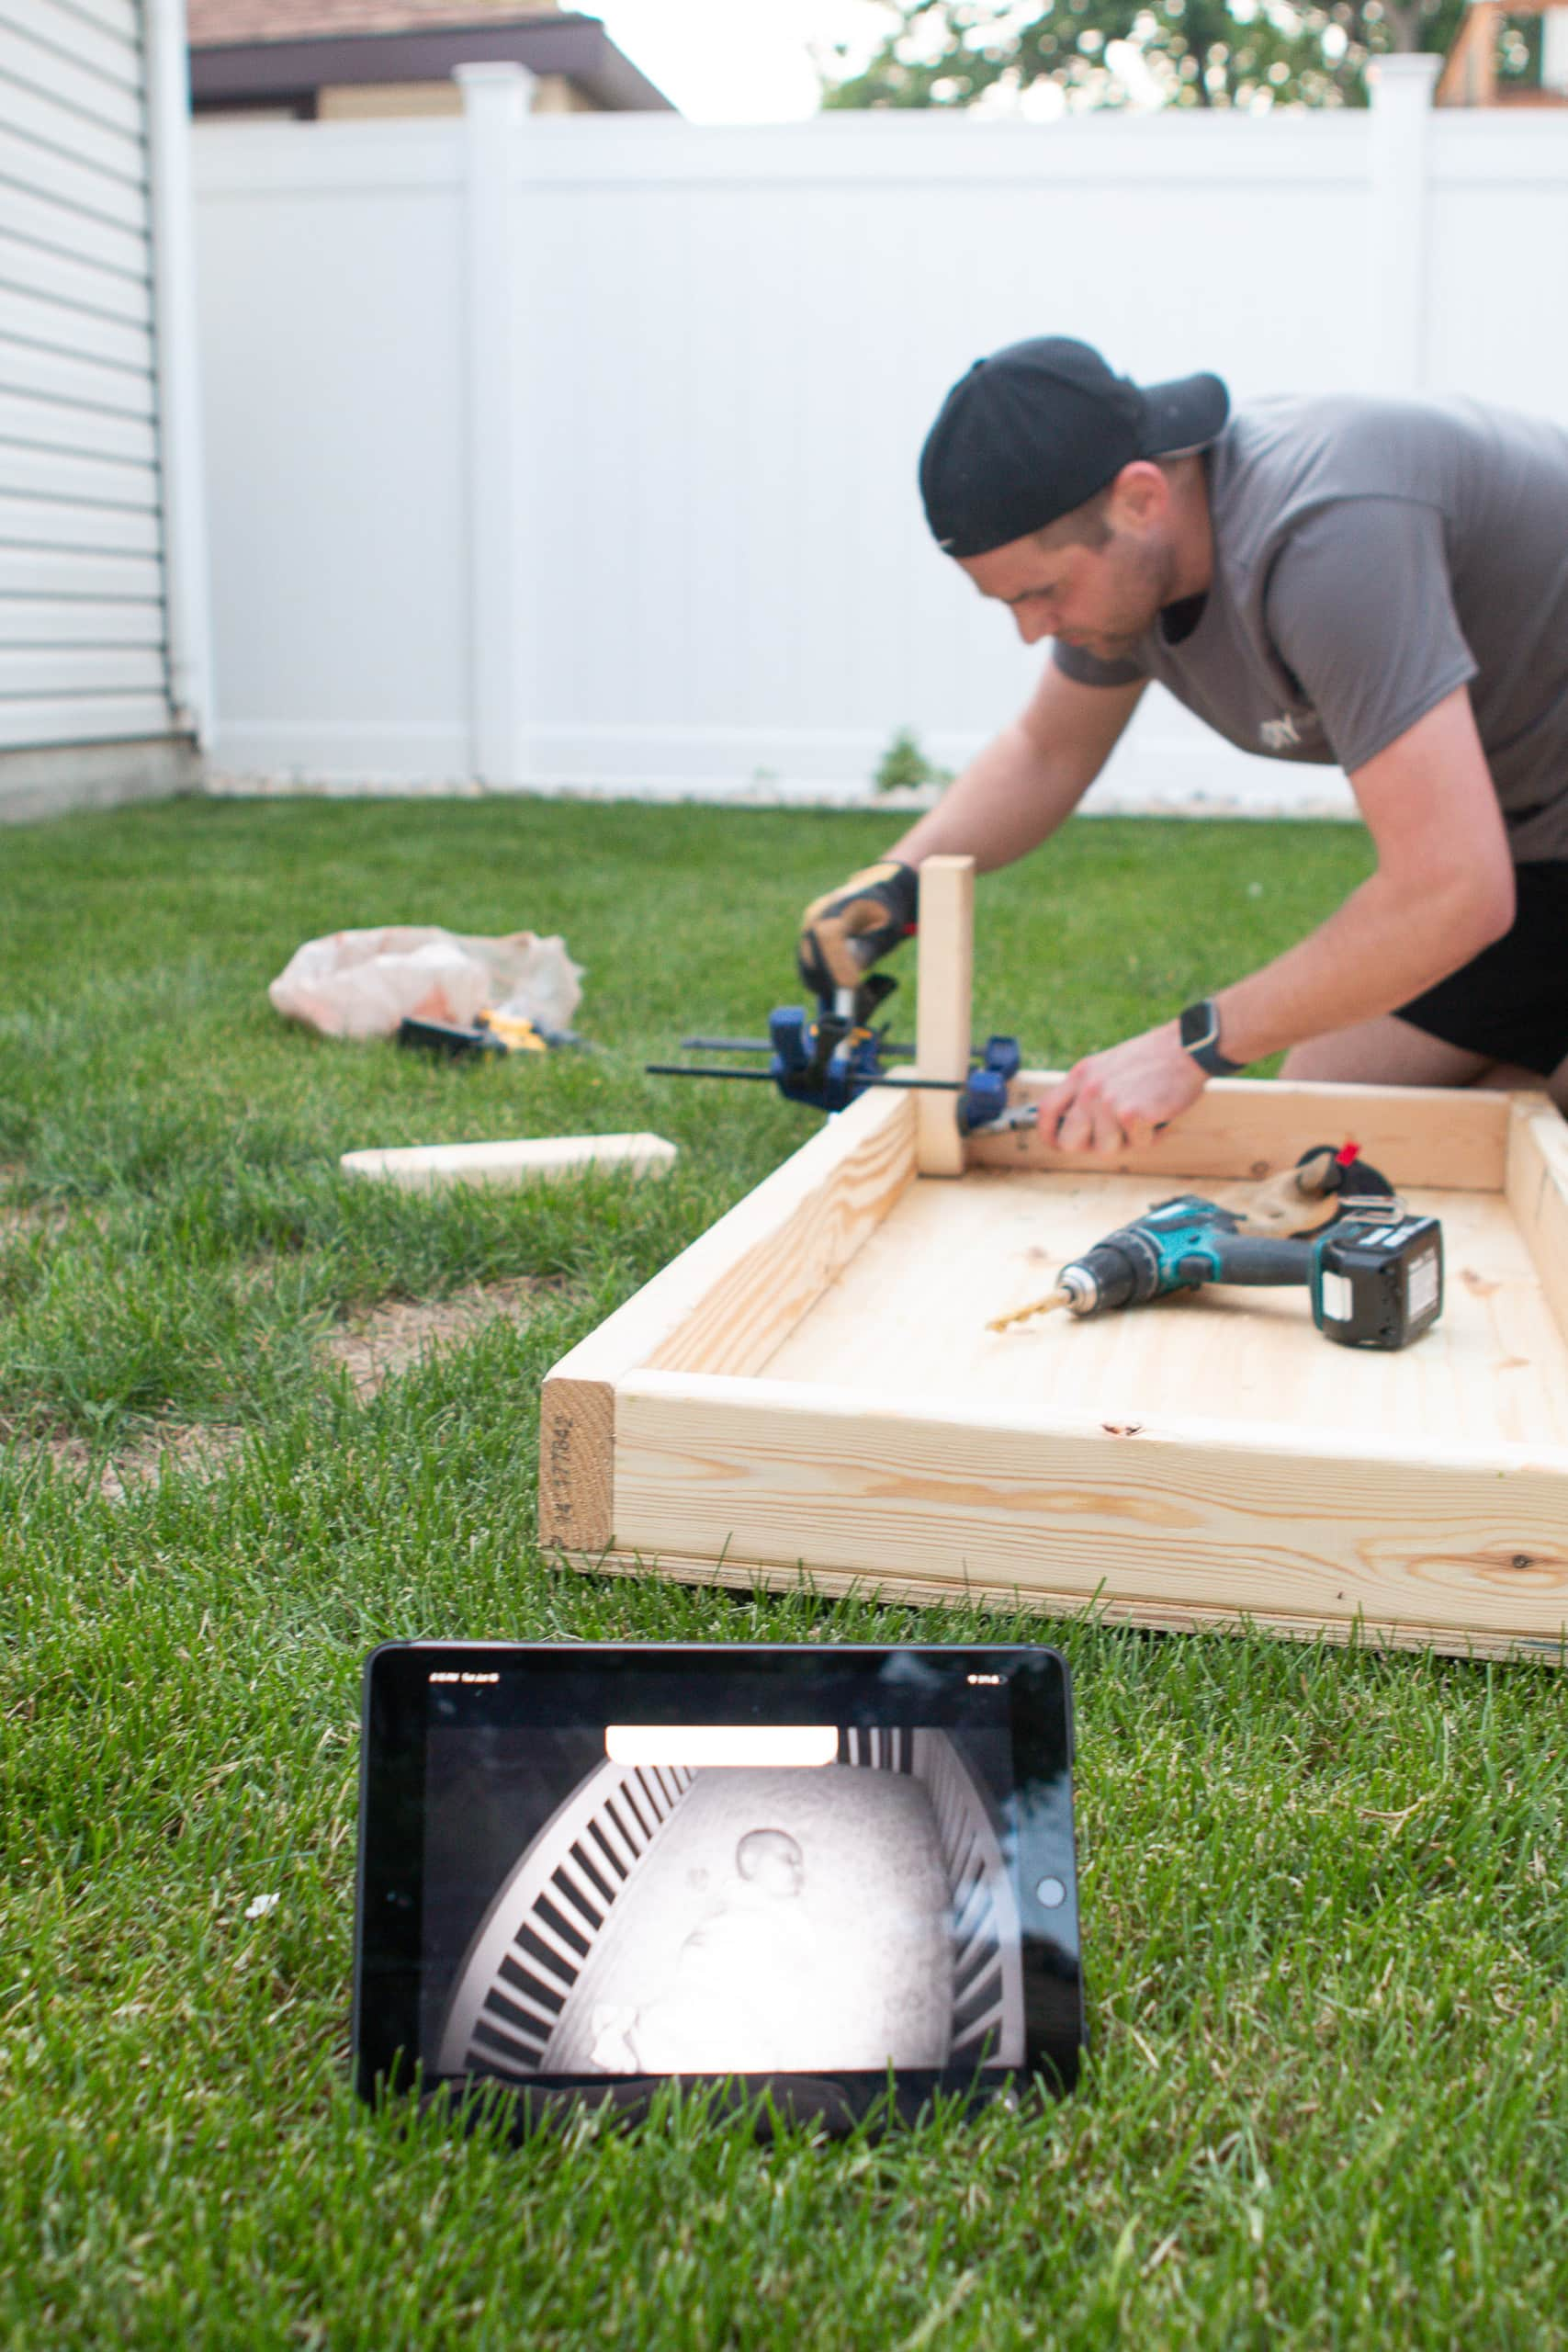 How to build DIY cornhole boards